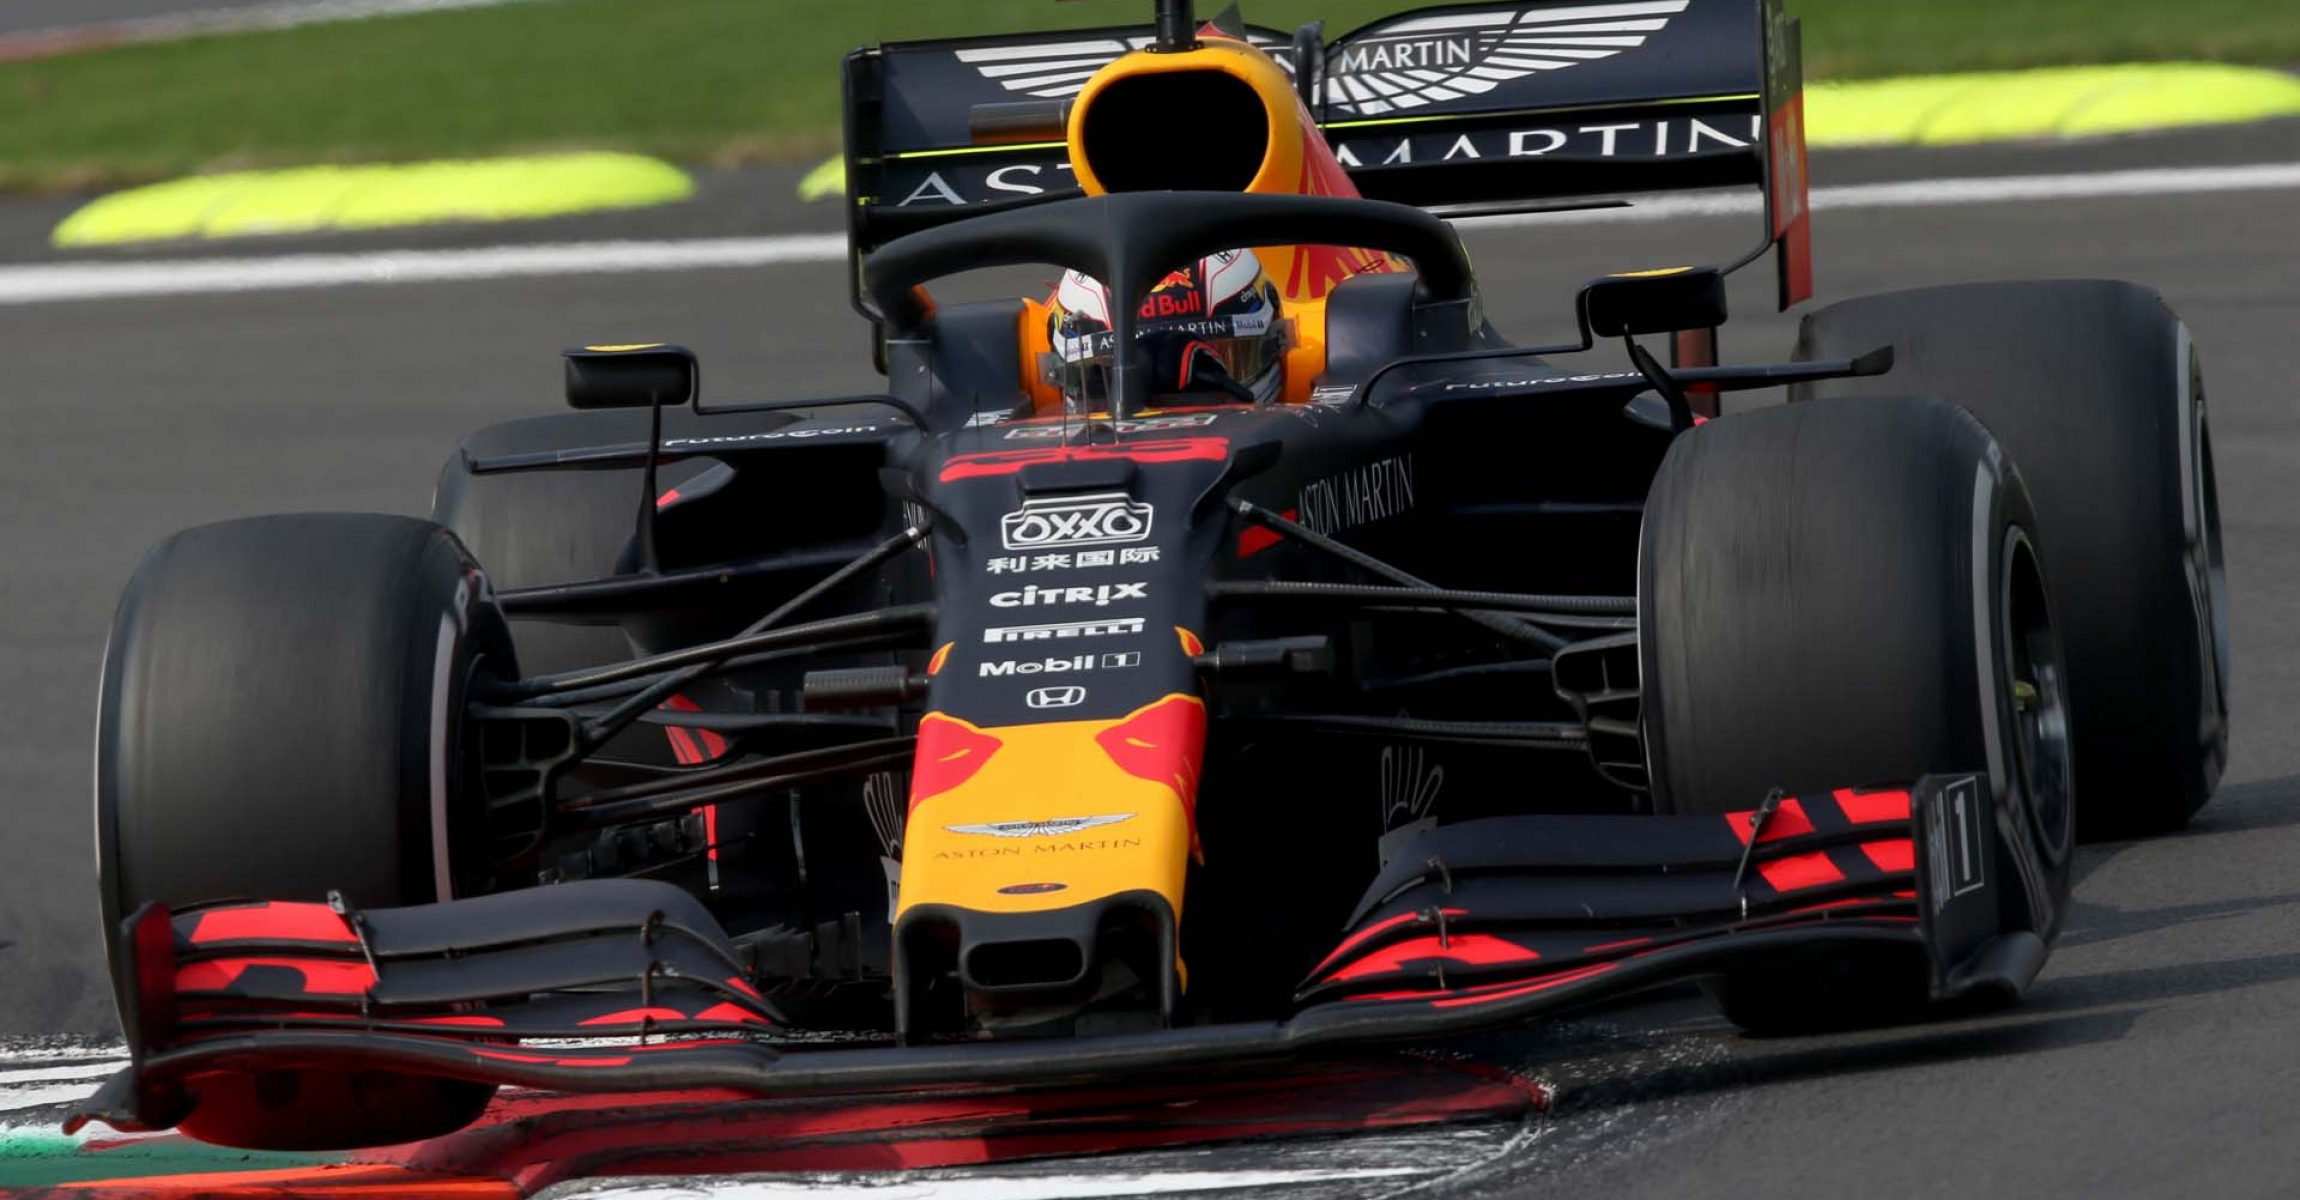 MEXICO CITY, MEXICO - OCTOBER 27: Max Verstappen of the Netherlands driving the (33) Aston Martin Red Bull Racing RB15 on track during the F1 Grand Prix of Mexico at Autodromo Hermanos Rodriguez on October 27, 2019 in Mexico City, Mexico. (Photo by Charles Coates/Getty Images) // Getty Images / Red Bull Content Pool  // AP-21ZQFYB251W11 // Usage for editorial use only //